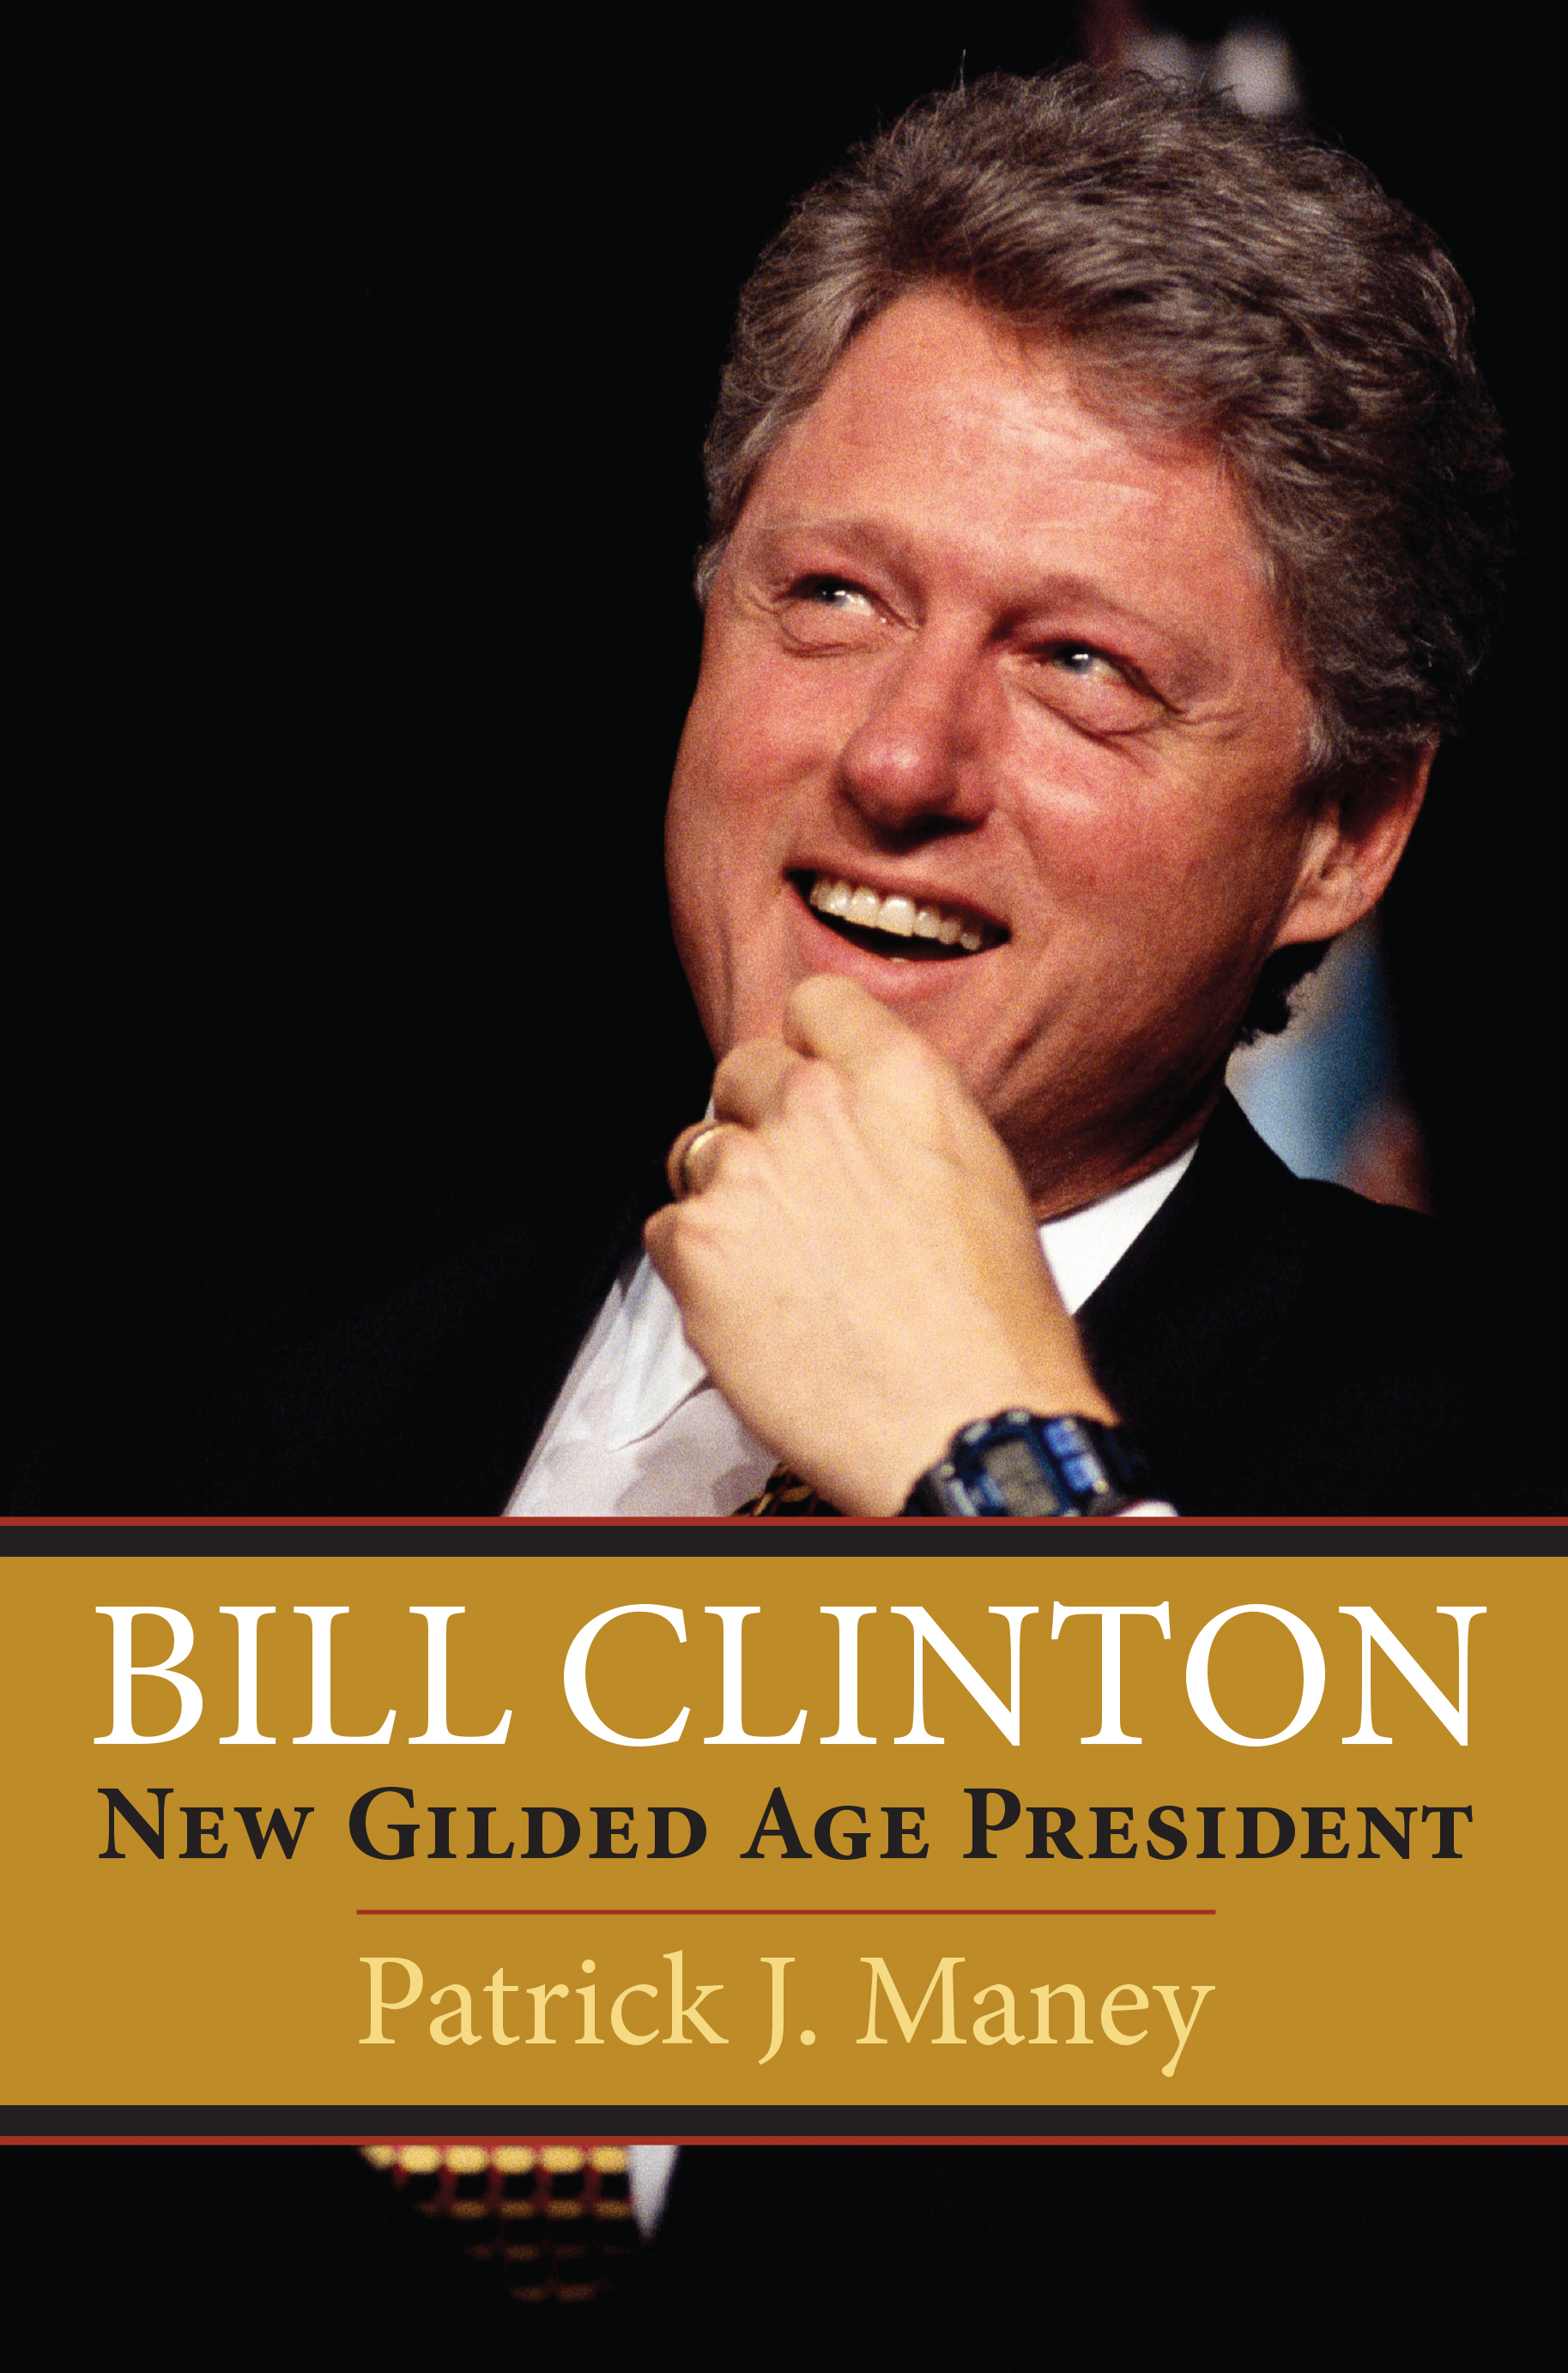 the life and accomplishments of william jefferson clinton And the life and accomplishments of william jefferson clinton during his presidency he national the concept of human experience in a connecticut yankee in king.